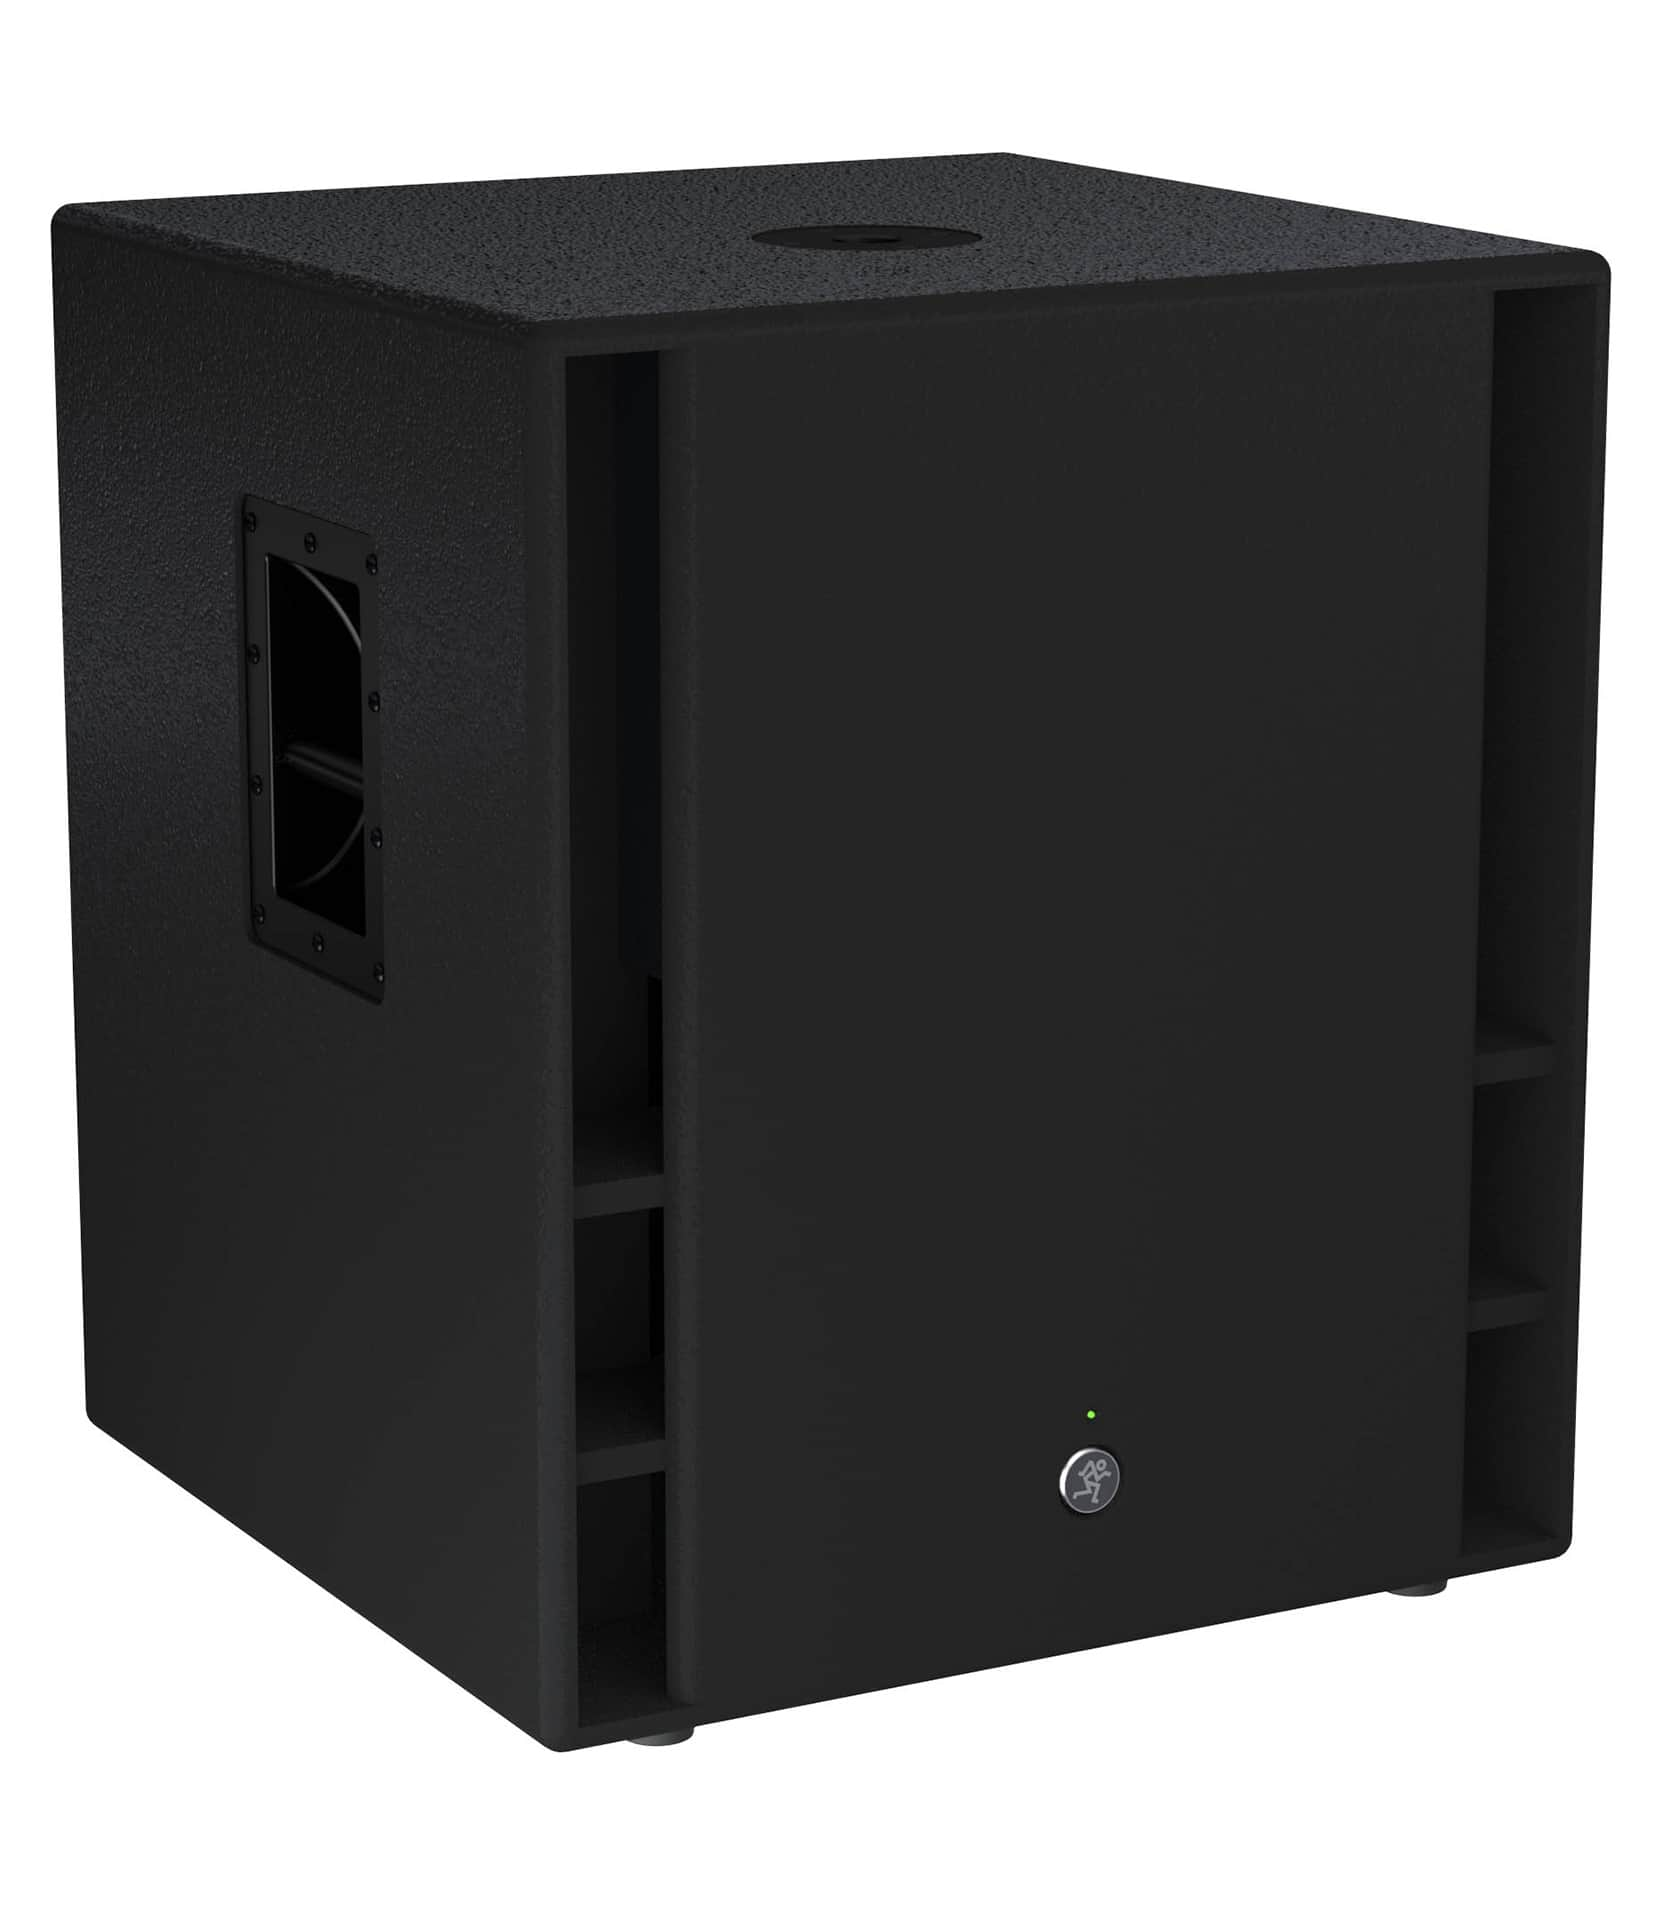 Melody House Musical Instruments Store - Thump18S Powered Subwoofer